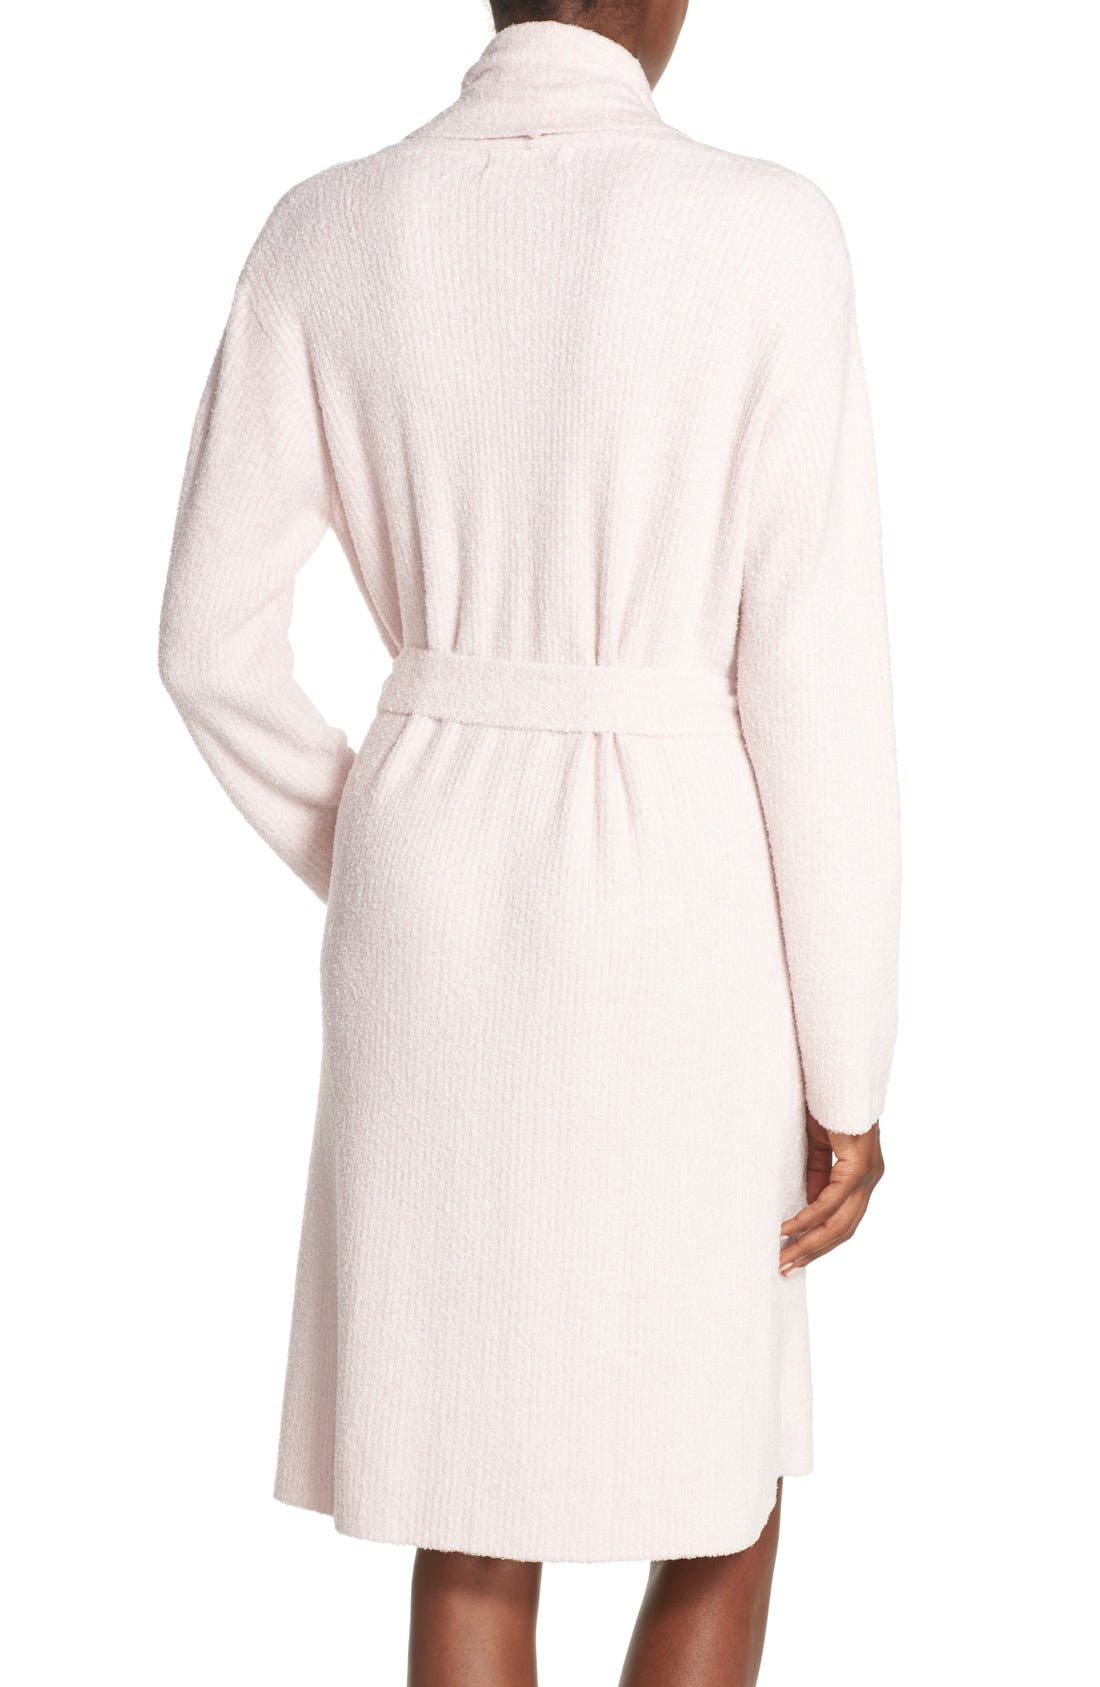 Barefoot Dreams CozyChic Lite<sup>®</sup> Short Robe,                             Alternate thumbnail 6, color,                             682